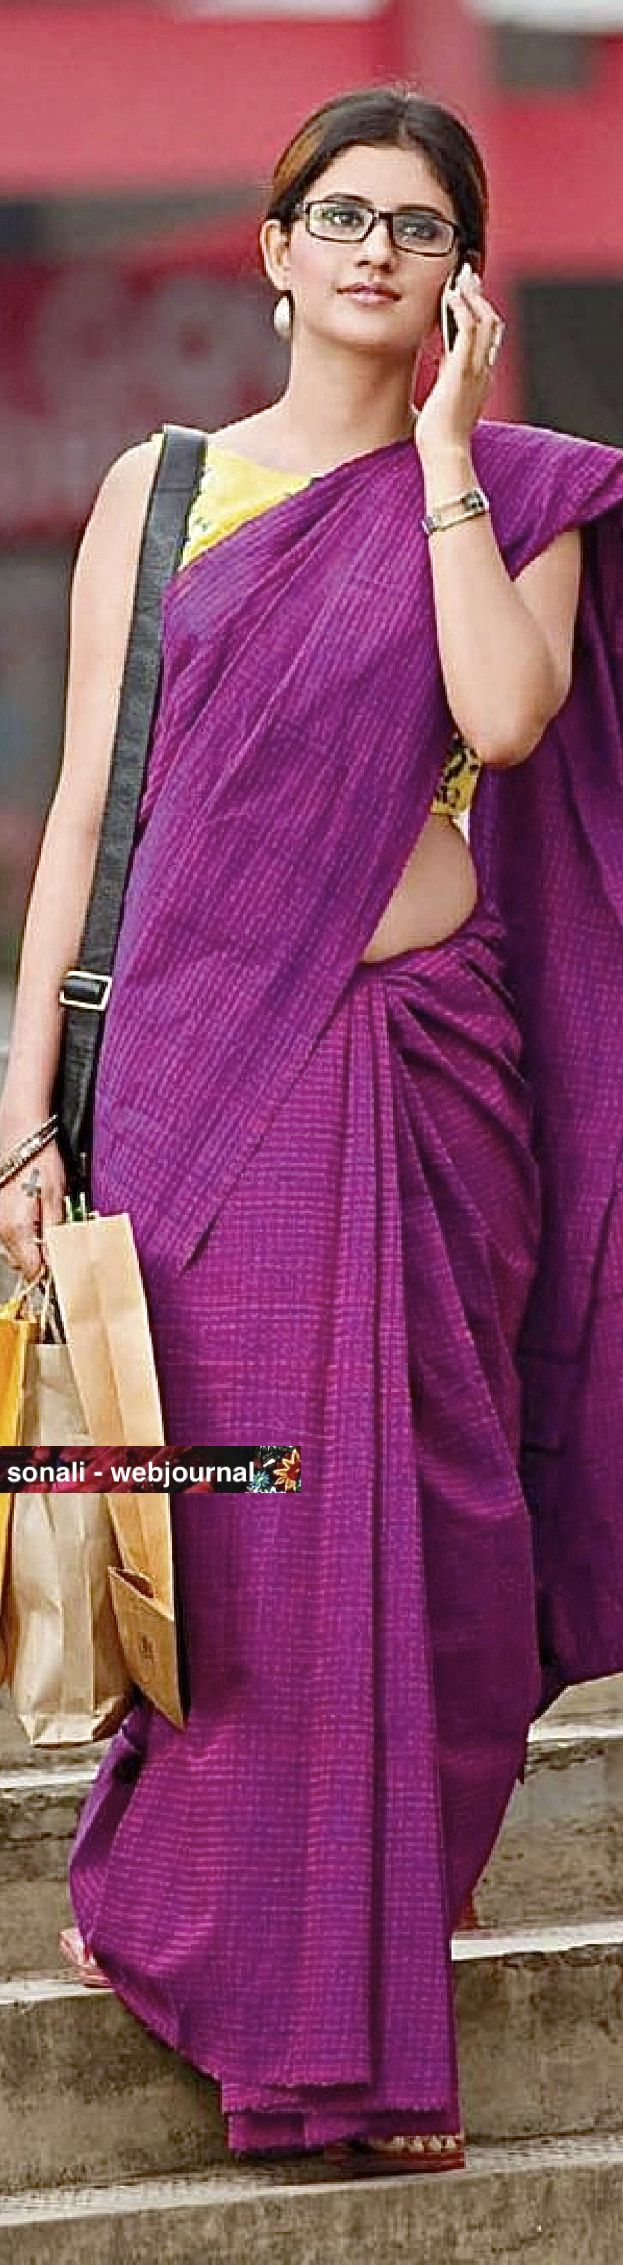 Handwoven bengal tant saree. looks good when pair up with some madhupani design yellow blouse